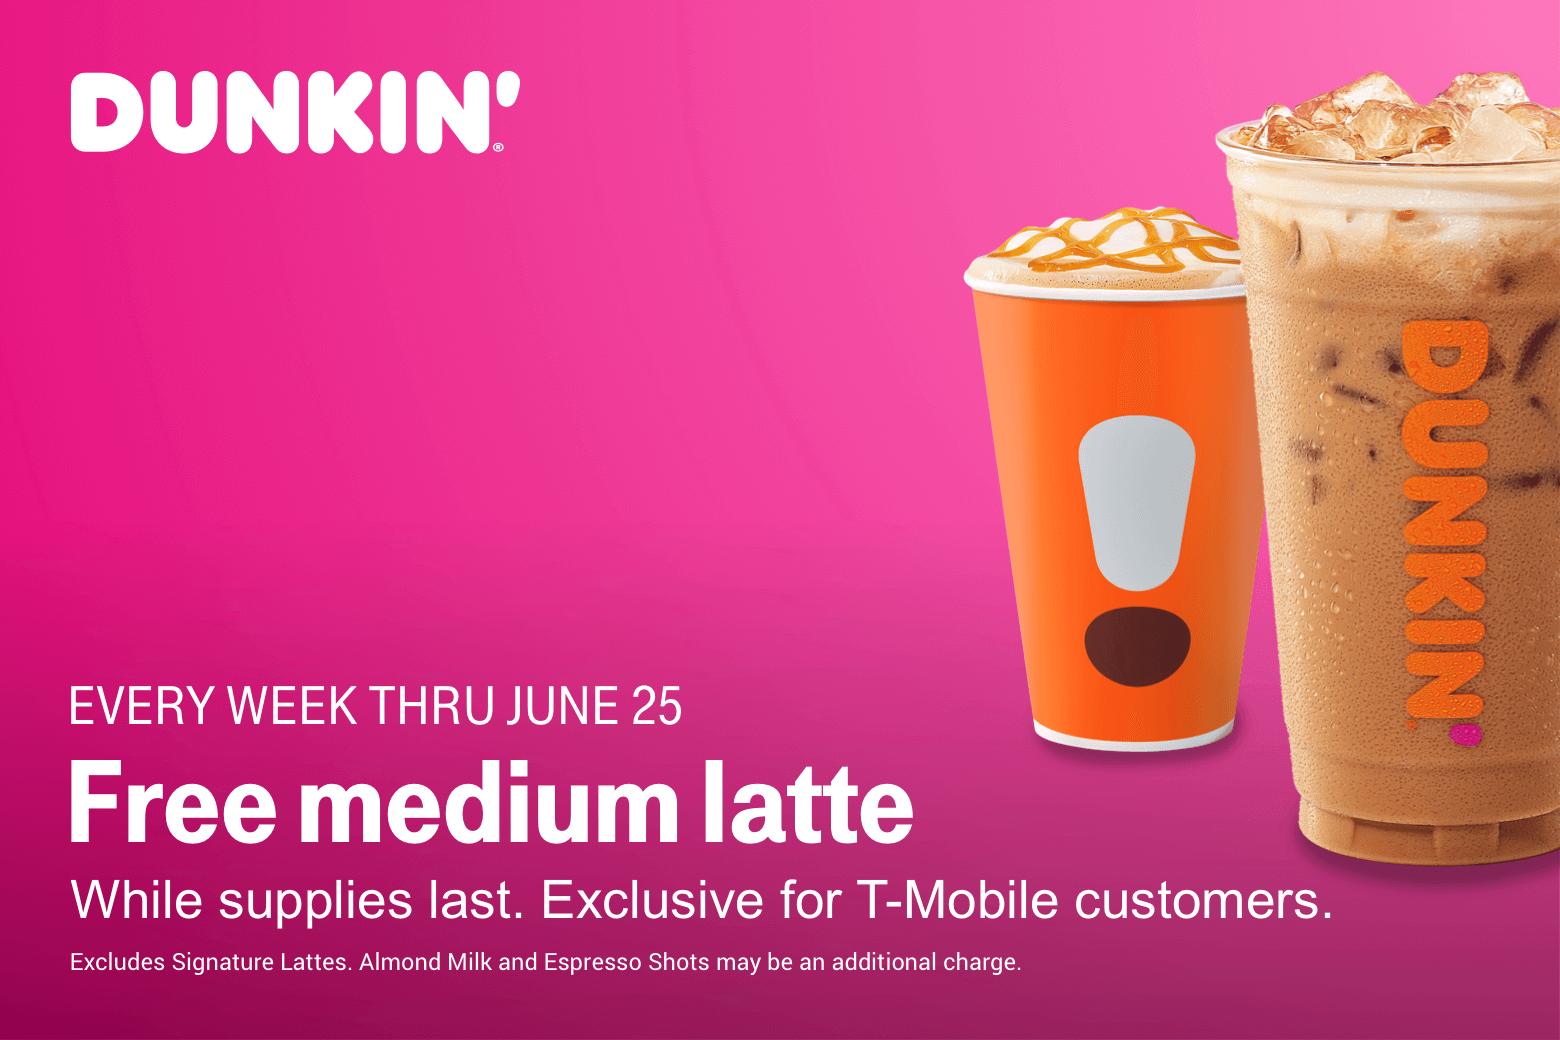 Dunkin. Free medium latte. Every week thru June 25. While supplies last. Exclusive for T-Mobile customers. Excludes signature lattes. Almond milk and espresso shots may be an additional charge.